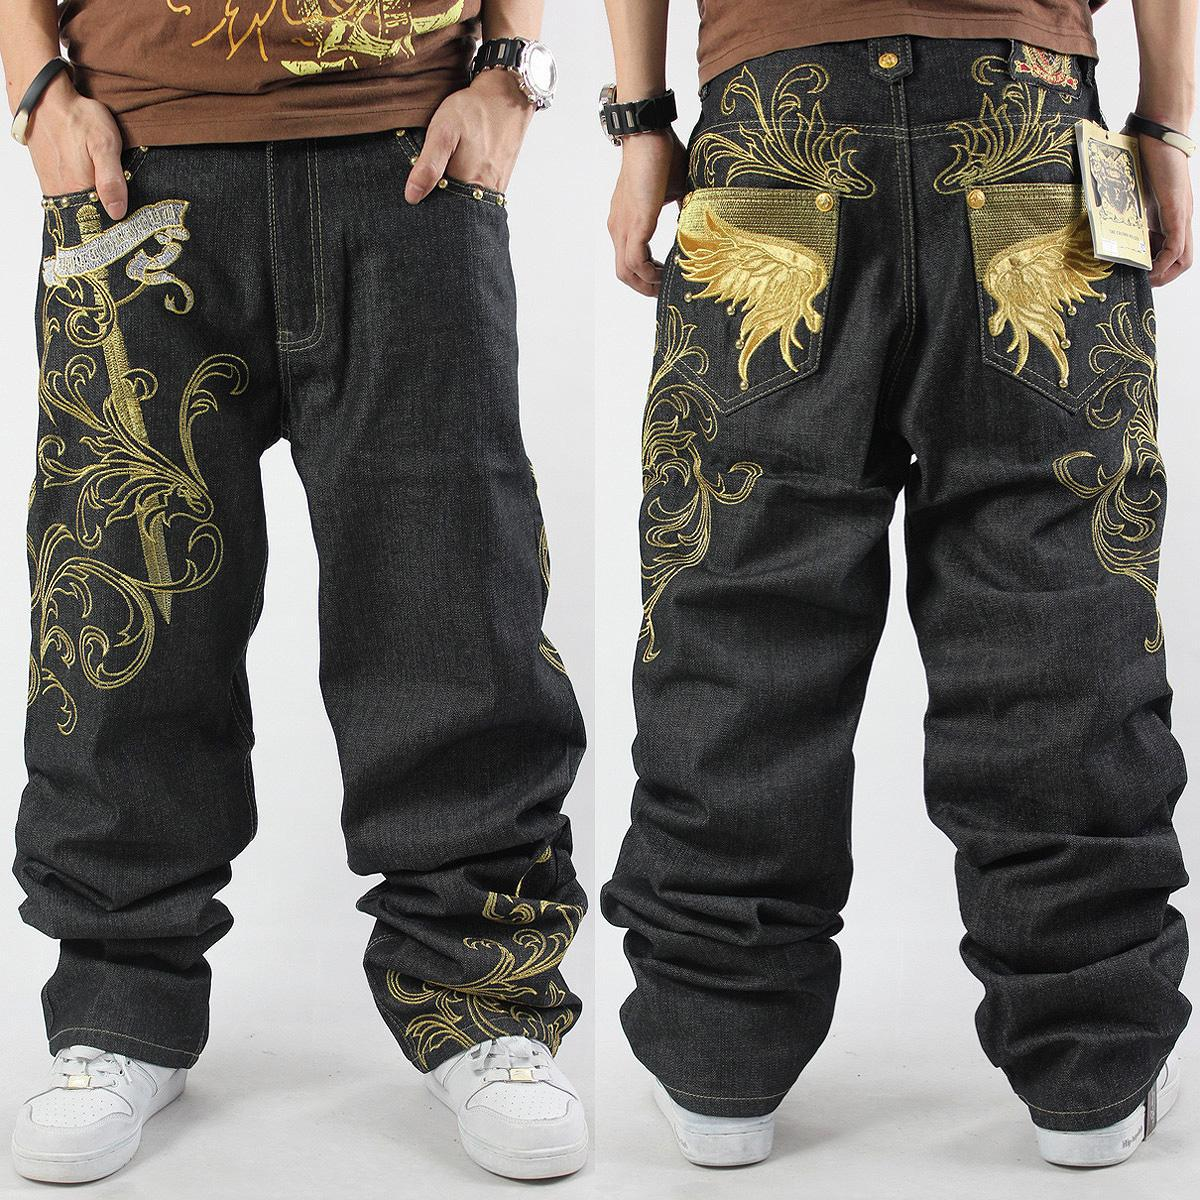 2016 New Mens Hip Hop Baggy Jeans For Street Dancing & Skateboard Loose Fit High Quality Embroidery Plus Size 30 To 46 Hot Sale graffiti letters men baggy jeans mens hip hop jeans long loose fashion skateboard baggy relaxed fit jeans men street dance pants